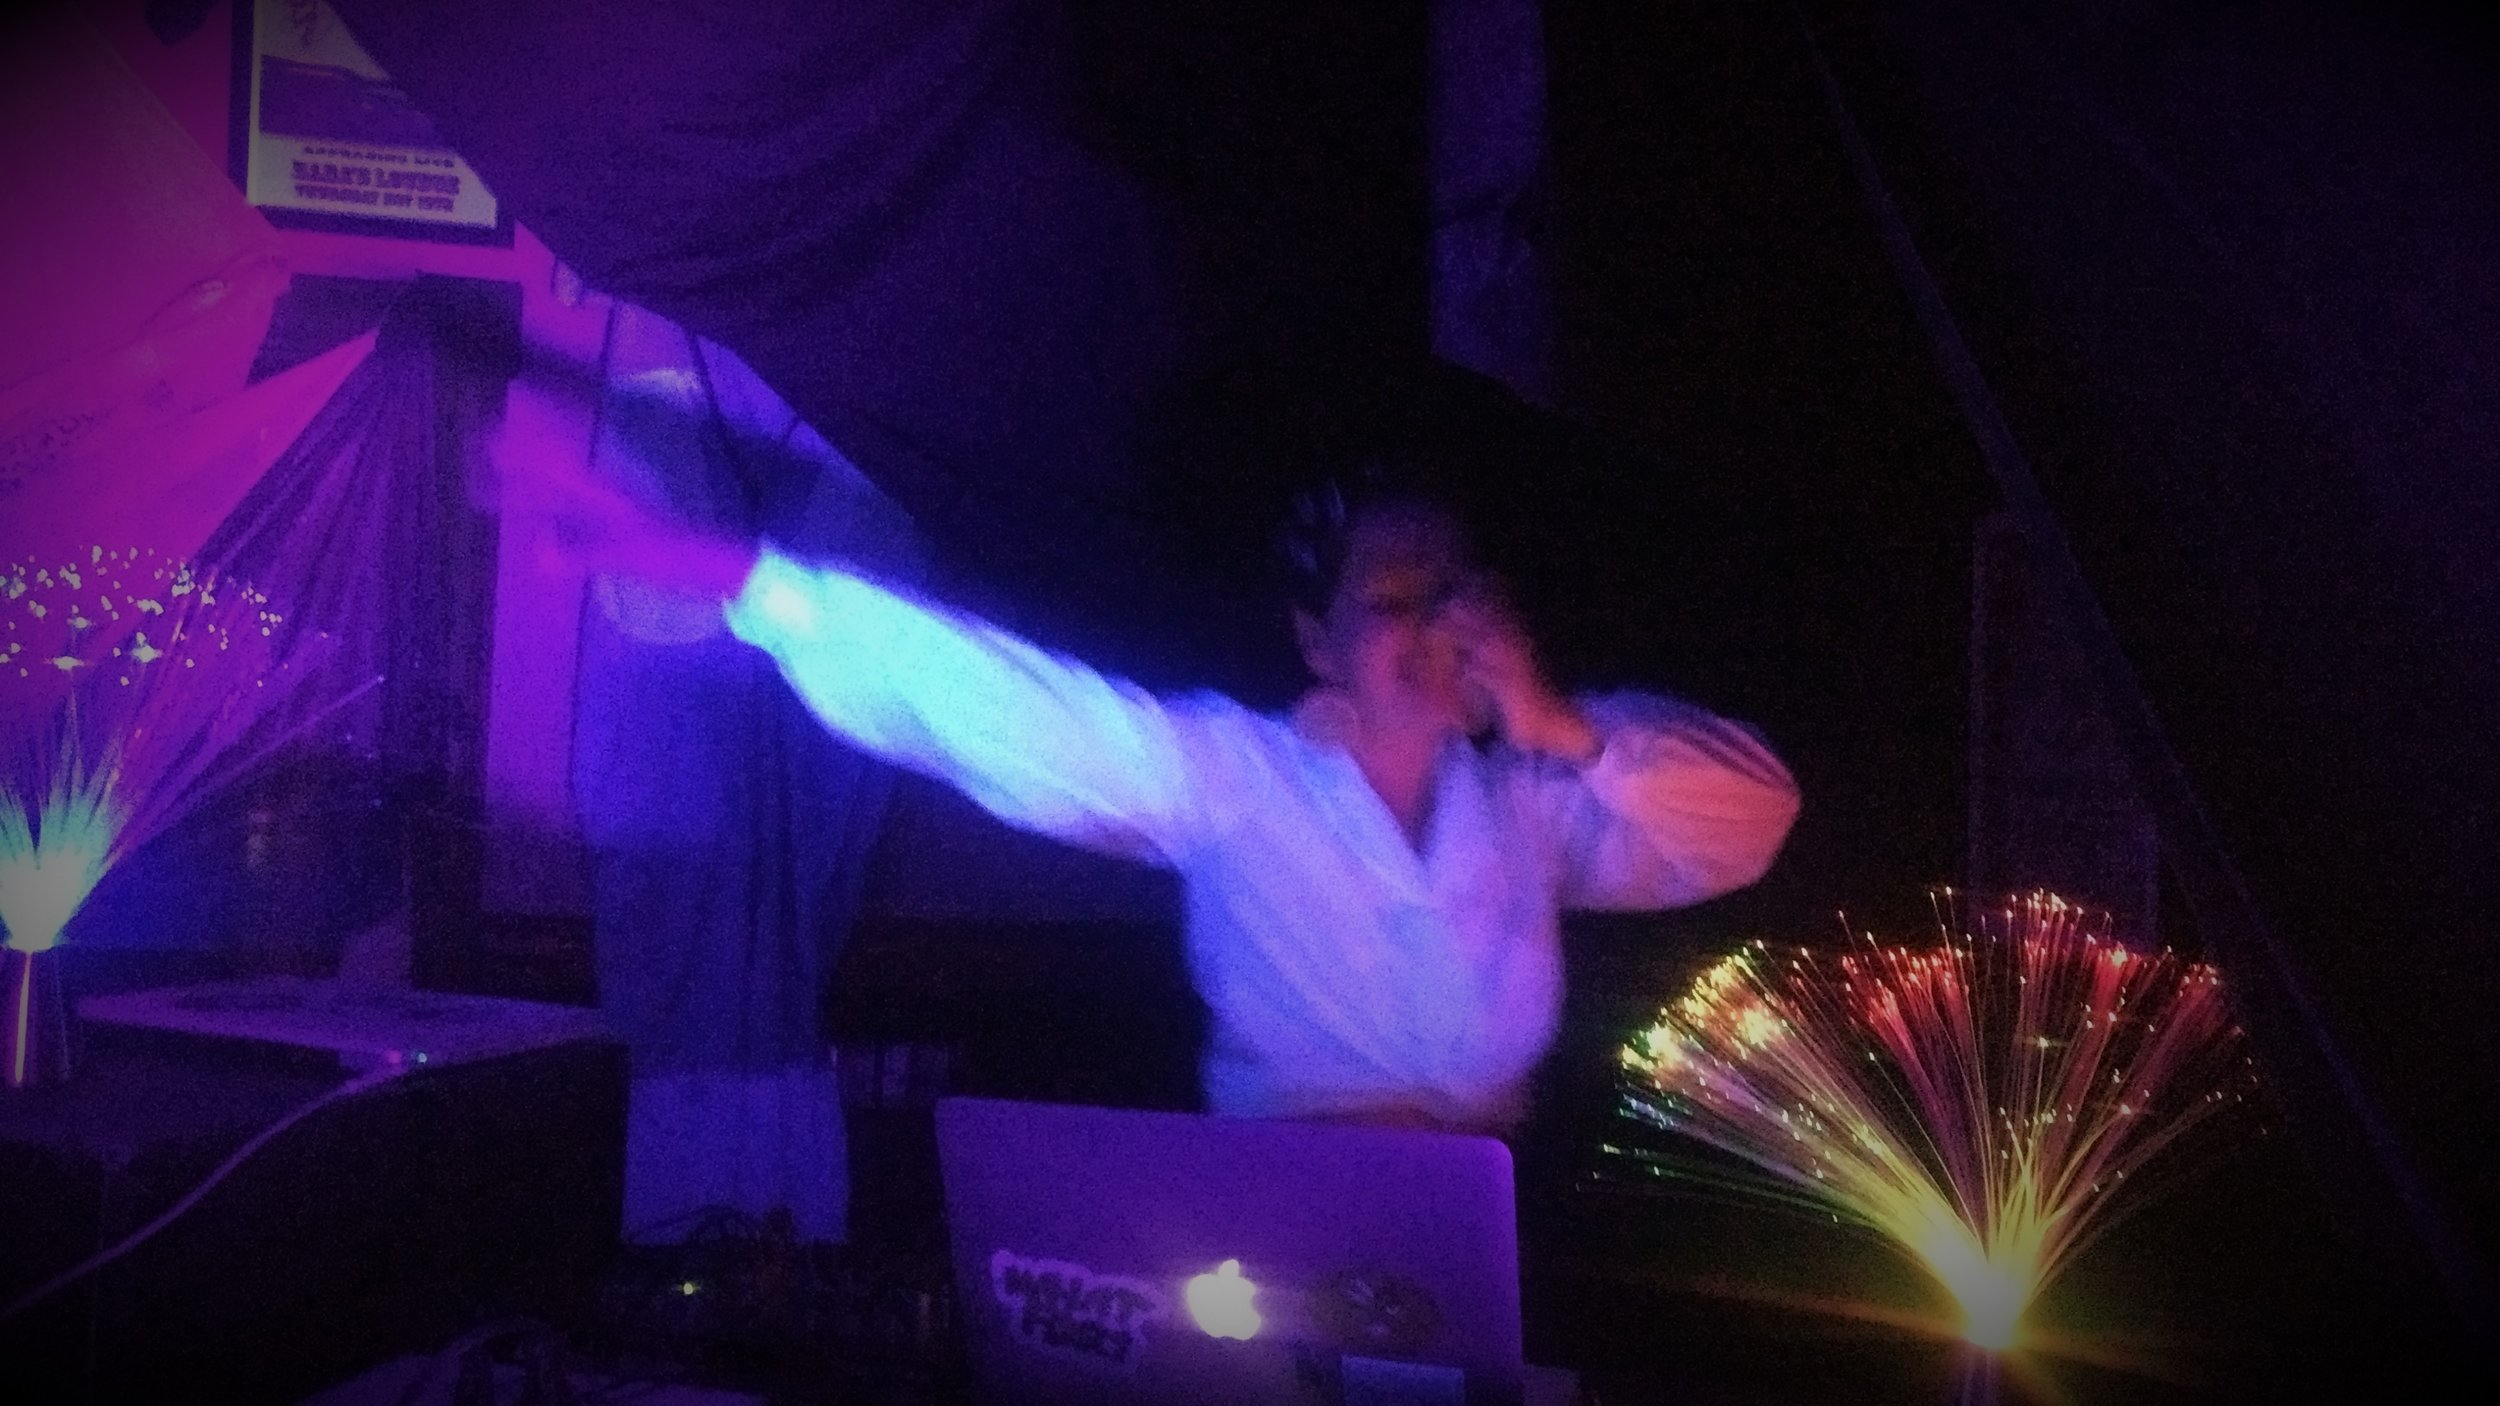 Lil Arepa's DJ set at GLAM Cave, coordinated by Russell Louder at Flotilla.